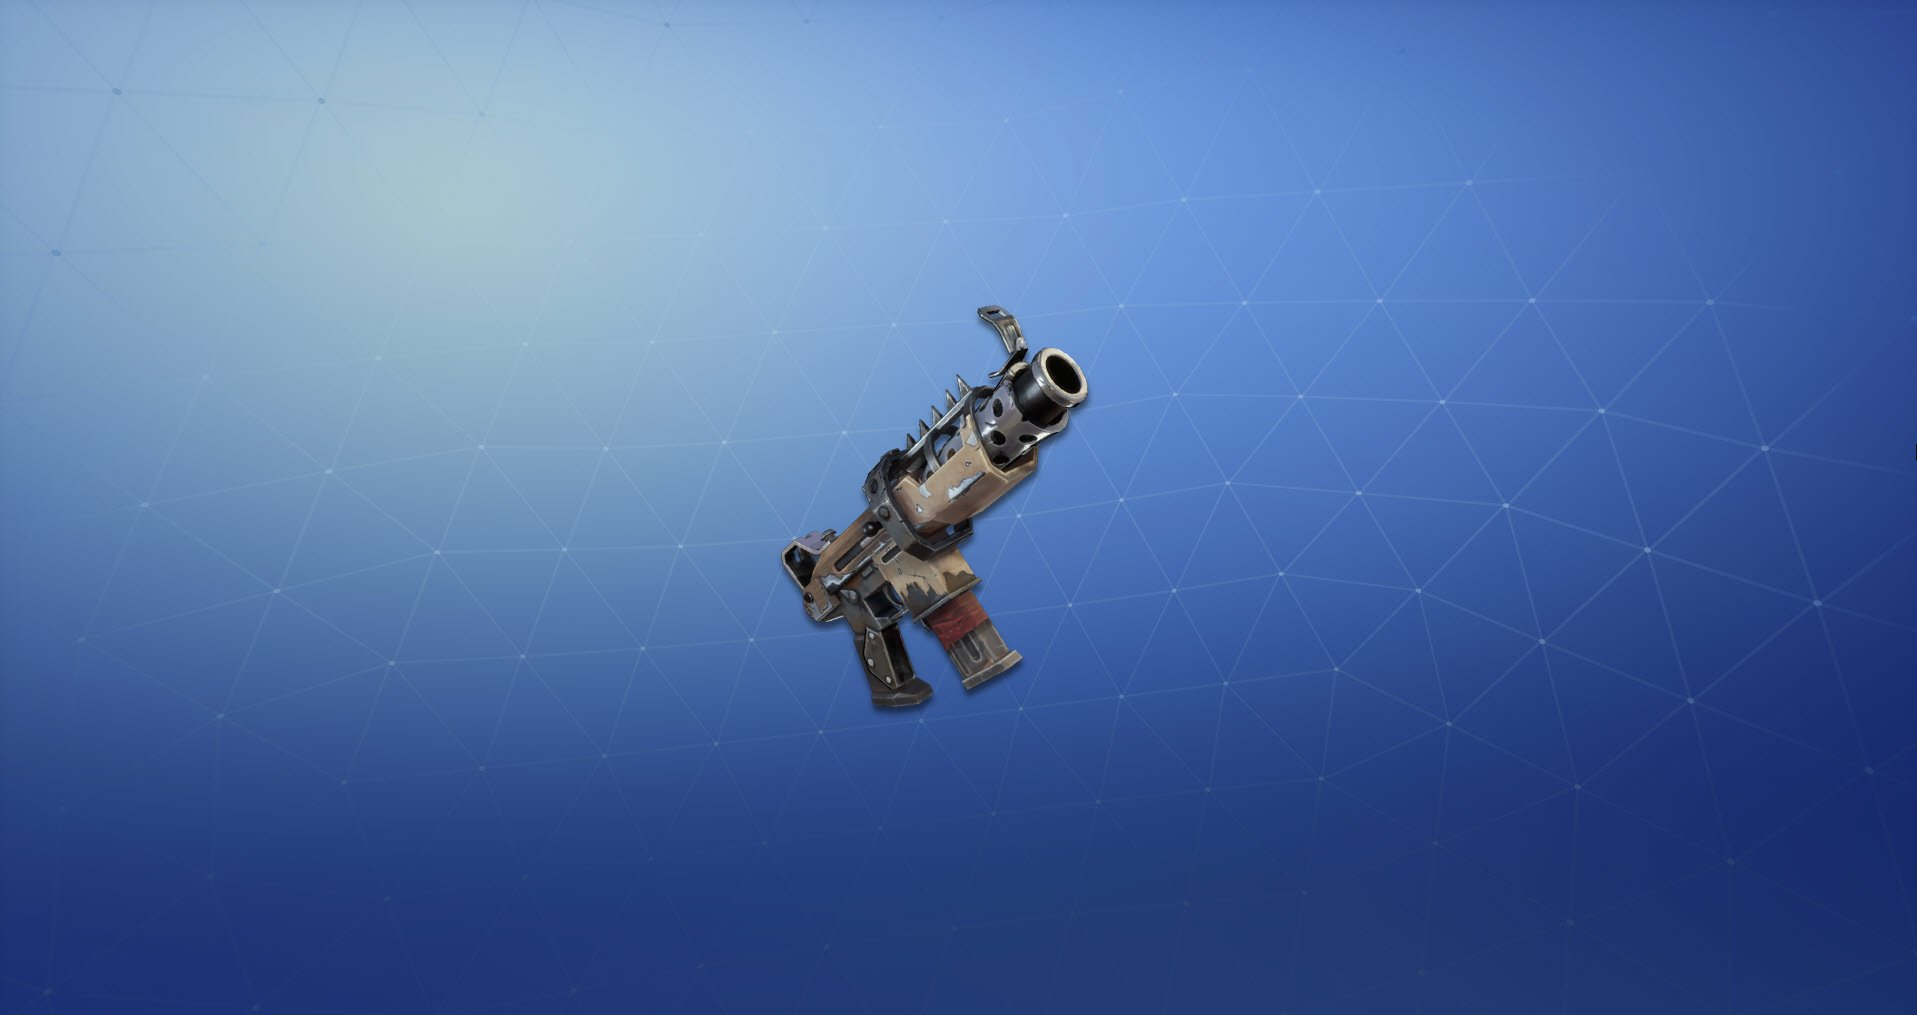 Fortnite Unvaulted Ltm All Vaulted Weapons And Items You Can Use